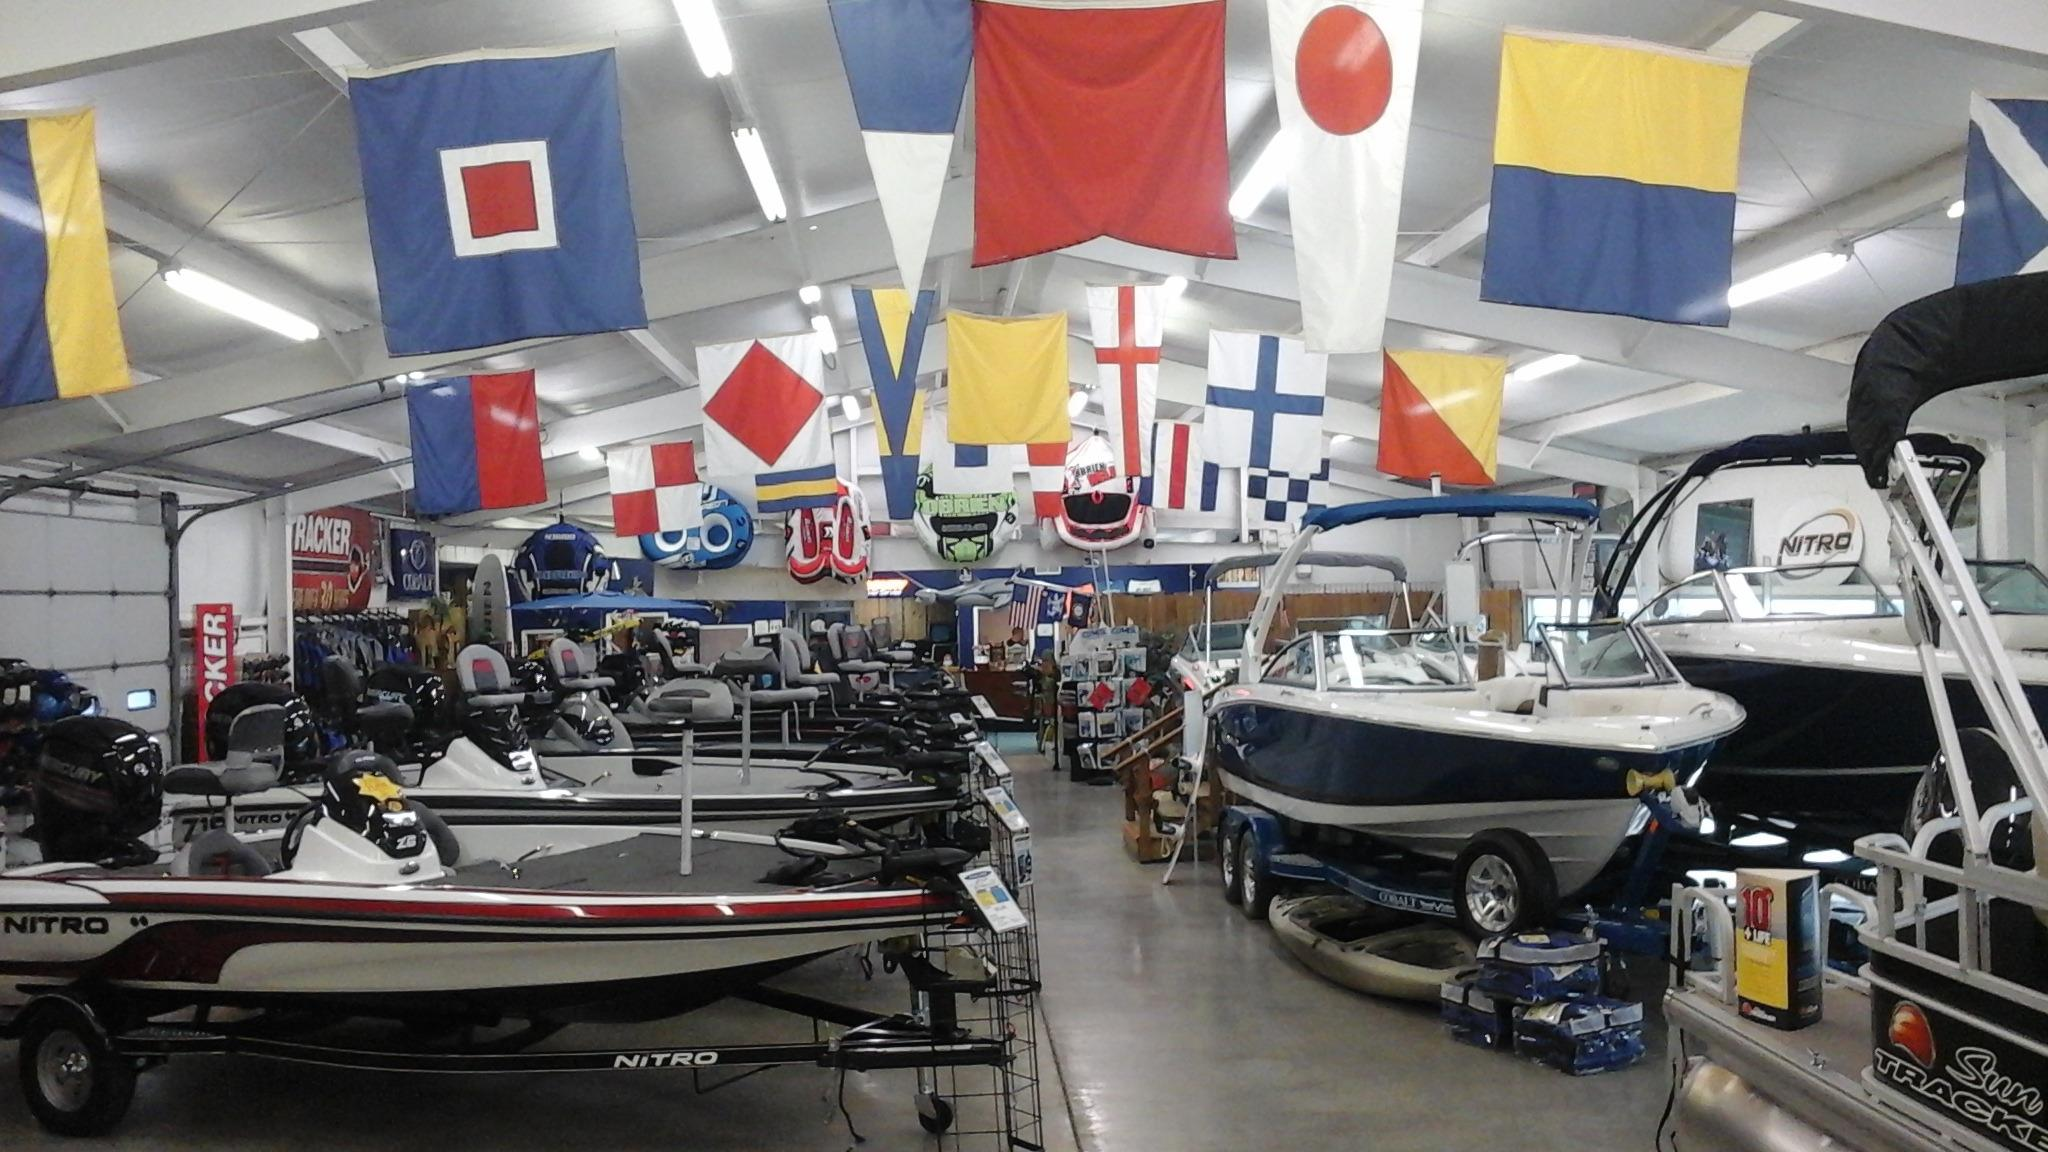 Stokley 39 s marine coupons near me in nicholasville 8coupons for Yamaha outboard mechanic near me